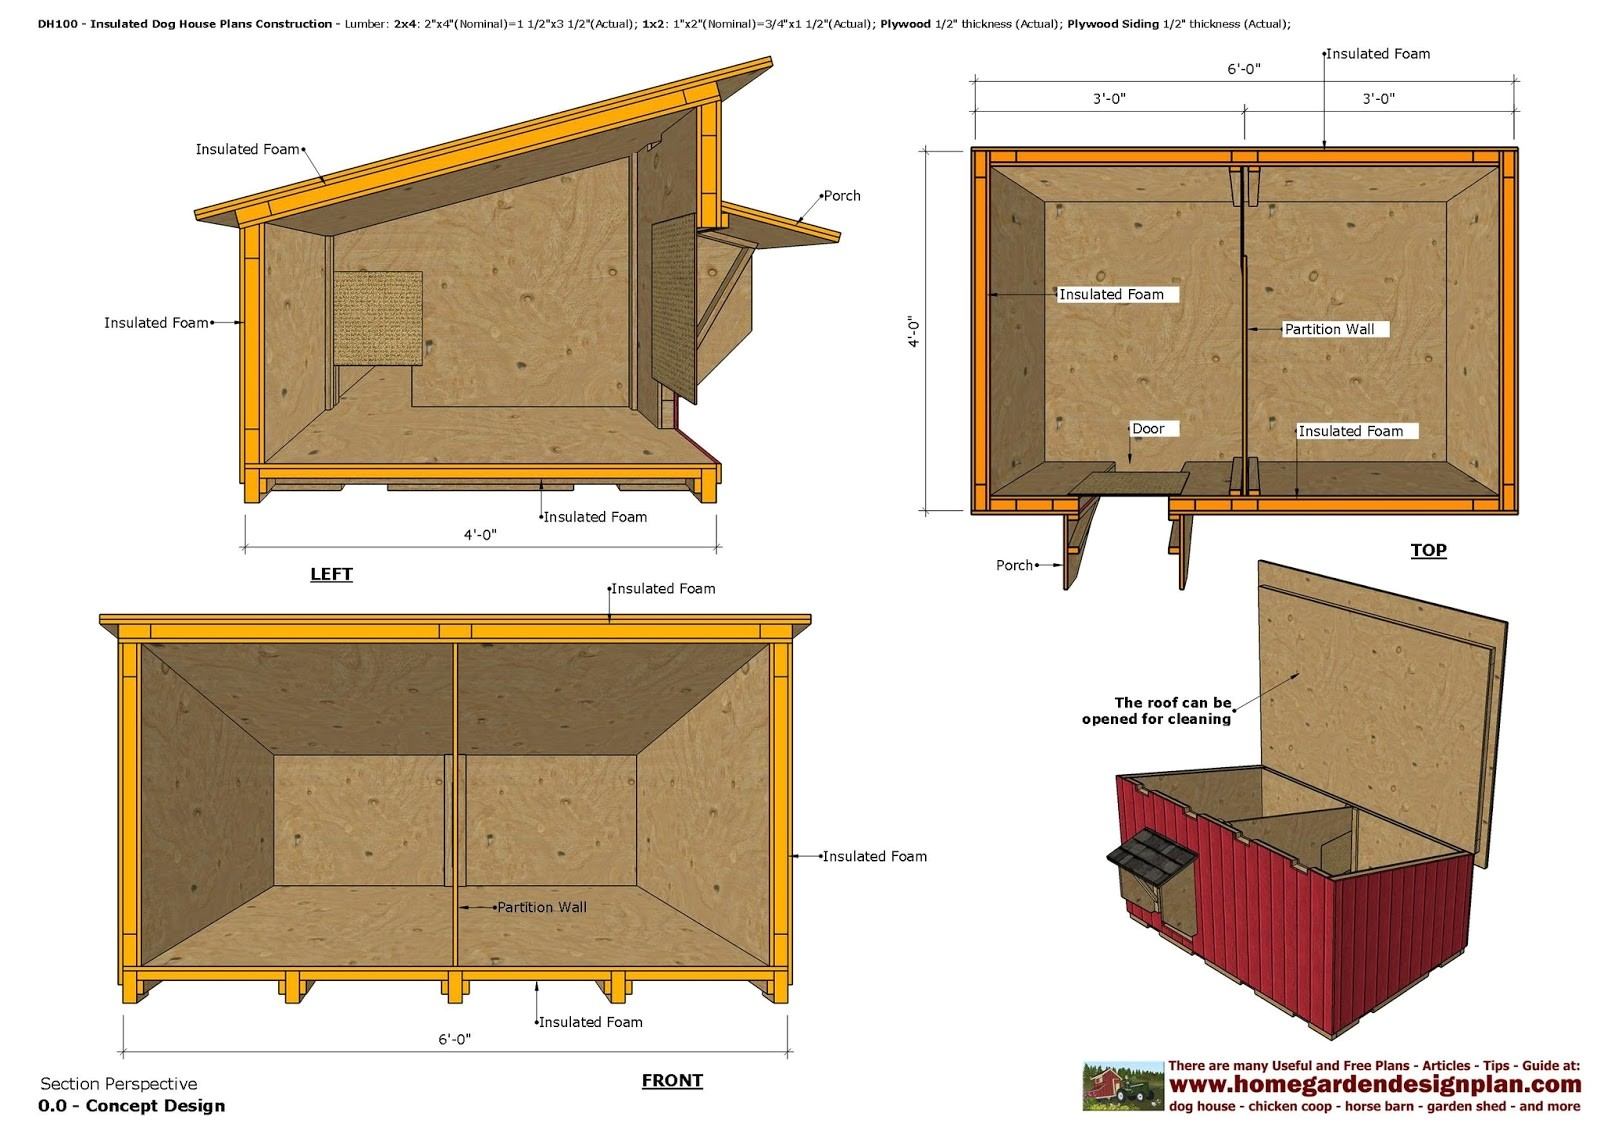 dh100 insulated dog house plans dog